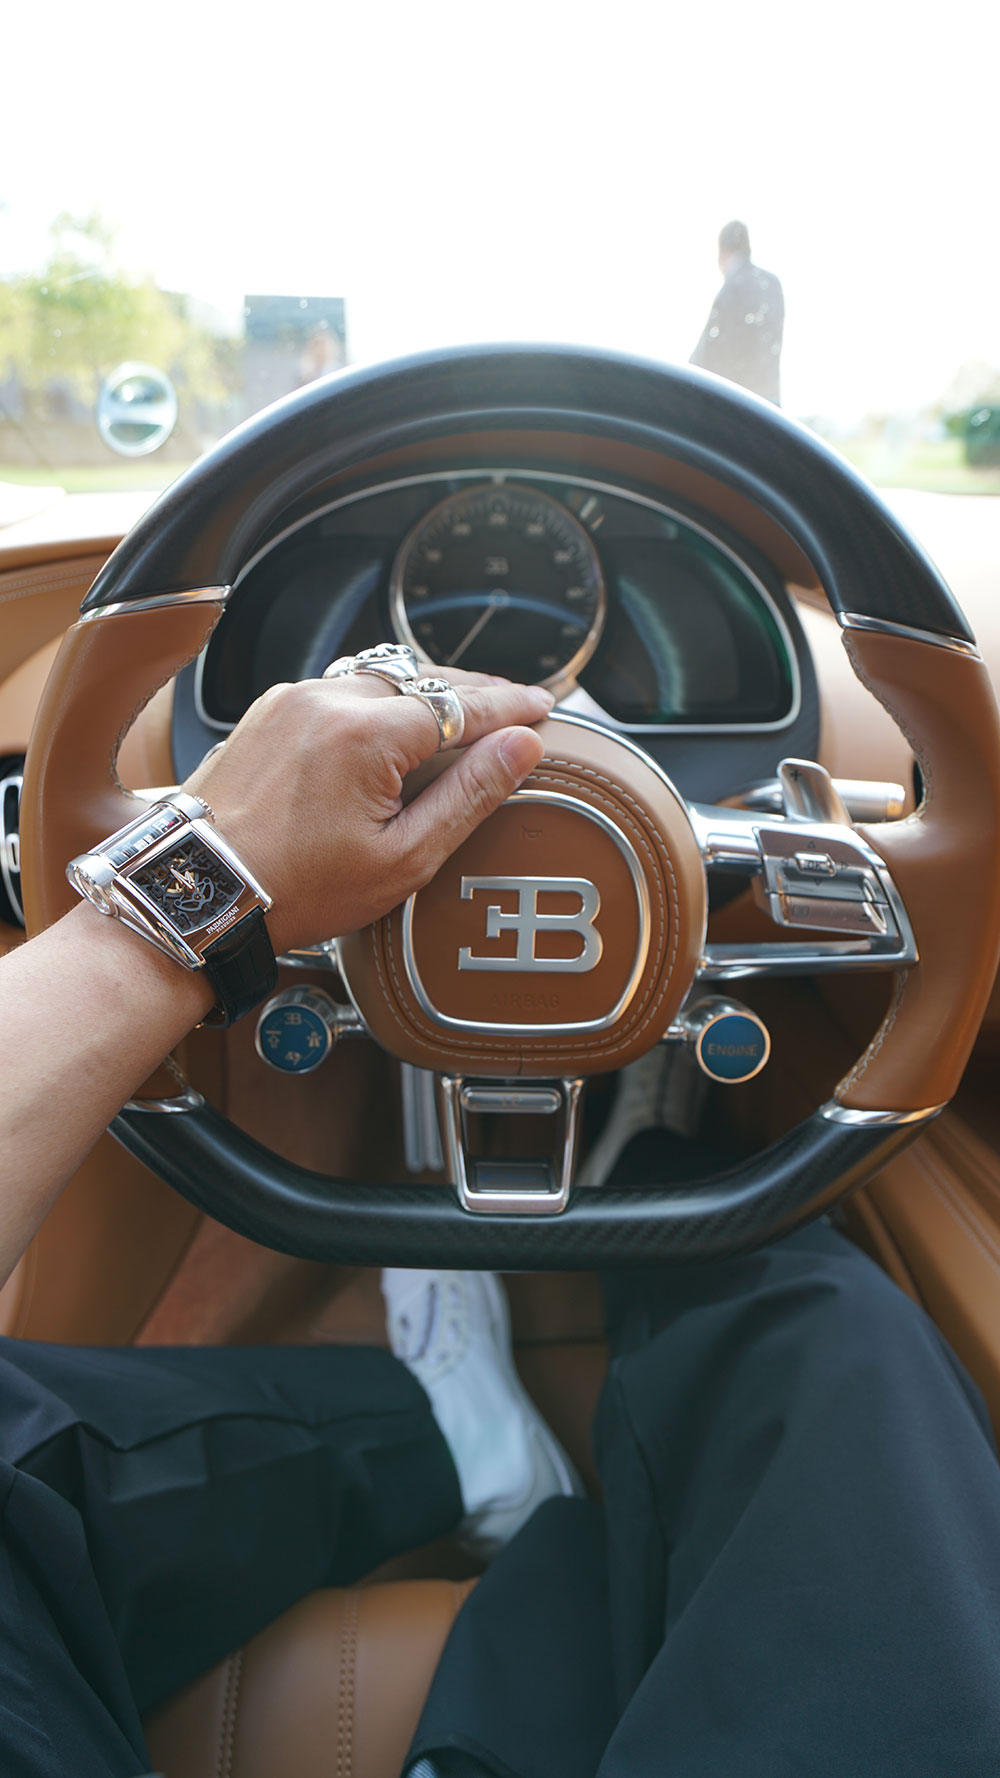 Parmigiani and Bugatti, a match made in heaven